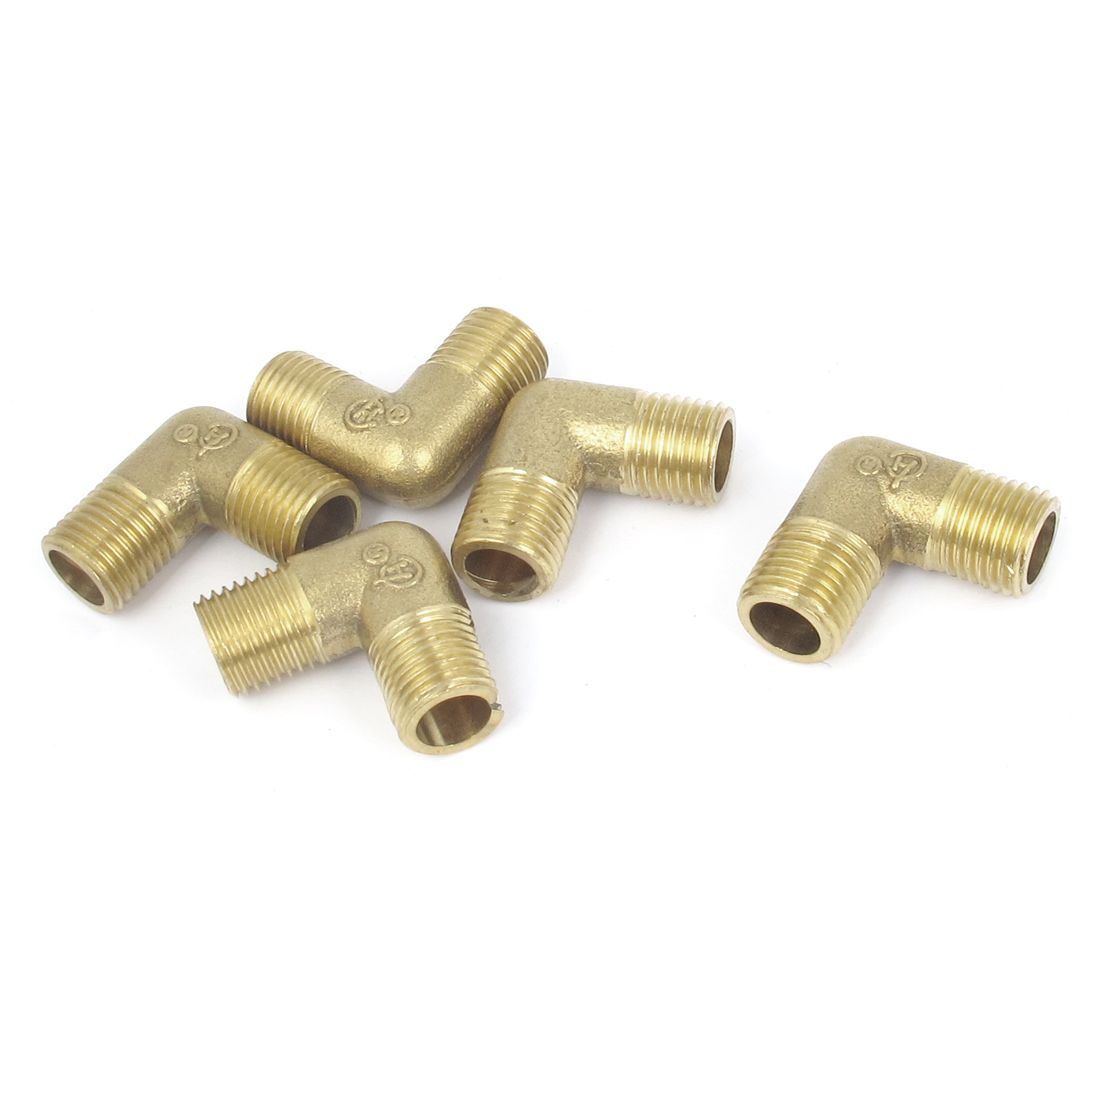 5Pcs Brass Pipe 90 Degree 1/4BSP Male to Male Thread Water Fuel Elbow Fitting